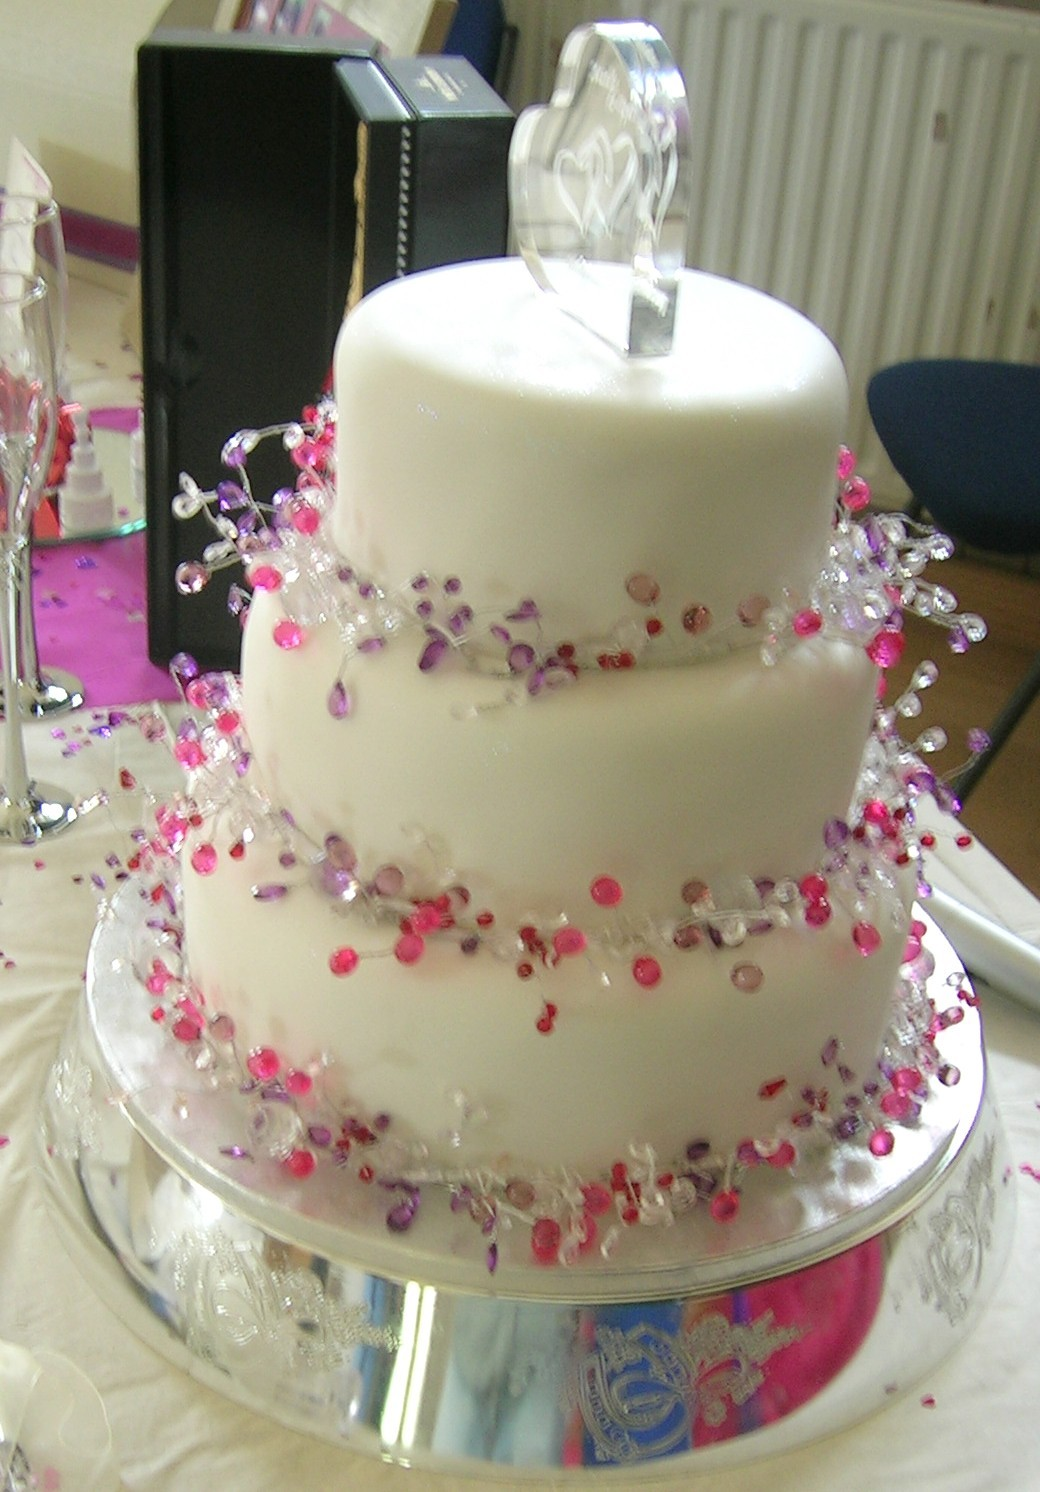 Decoration Ideas Of Cake : Wedding Pictures Wedding Photos: Wedding Cake Decorating ...